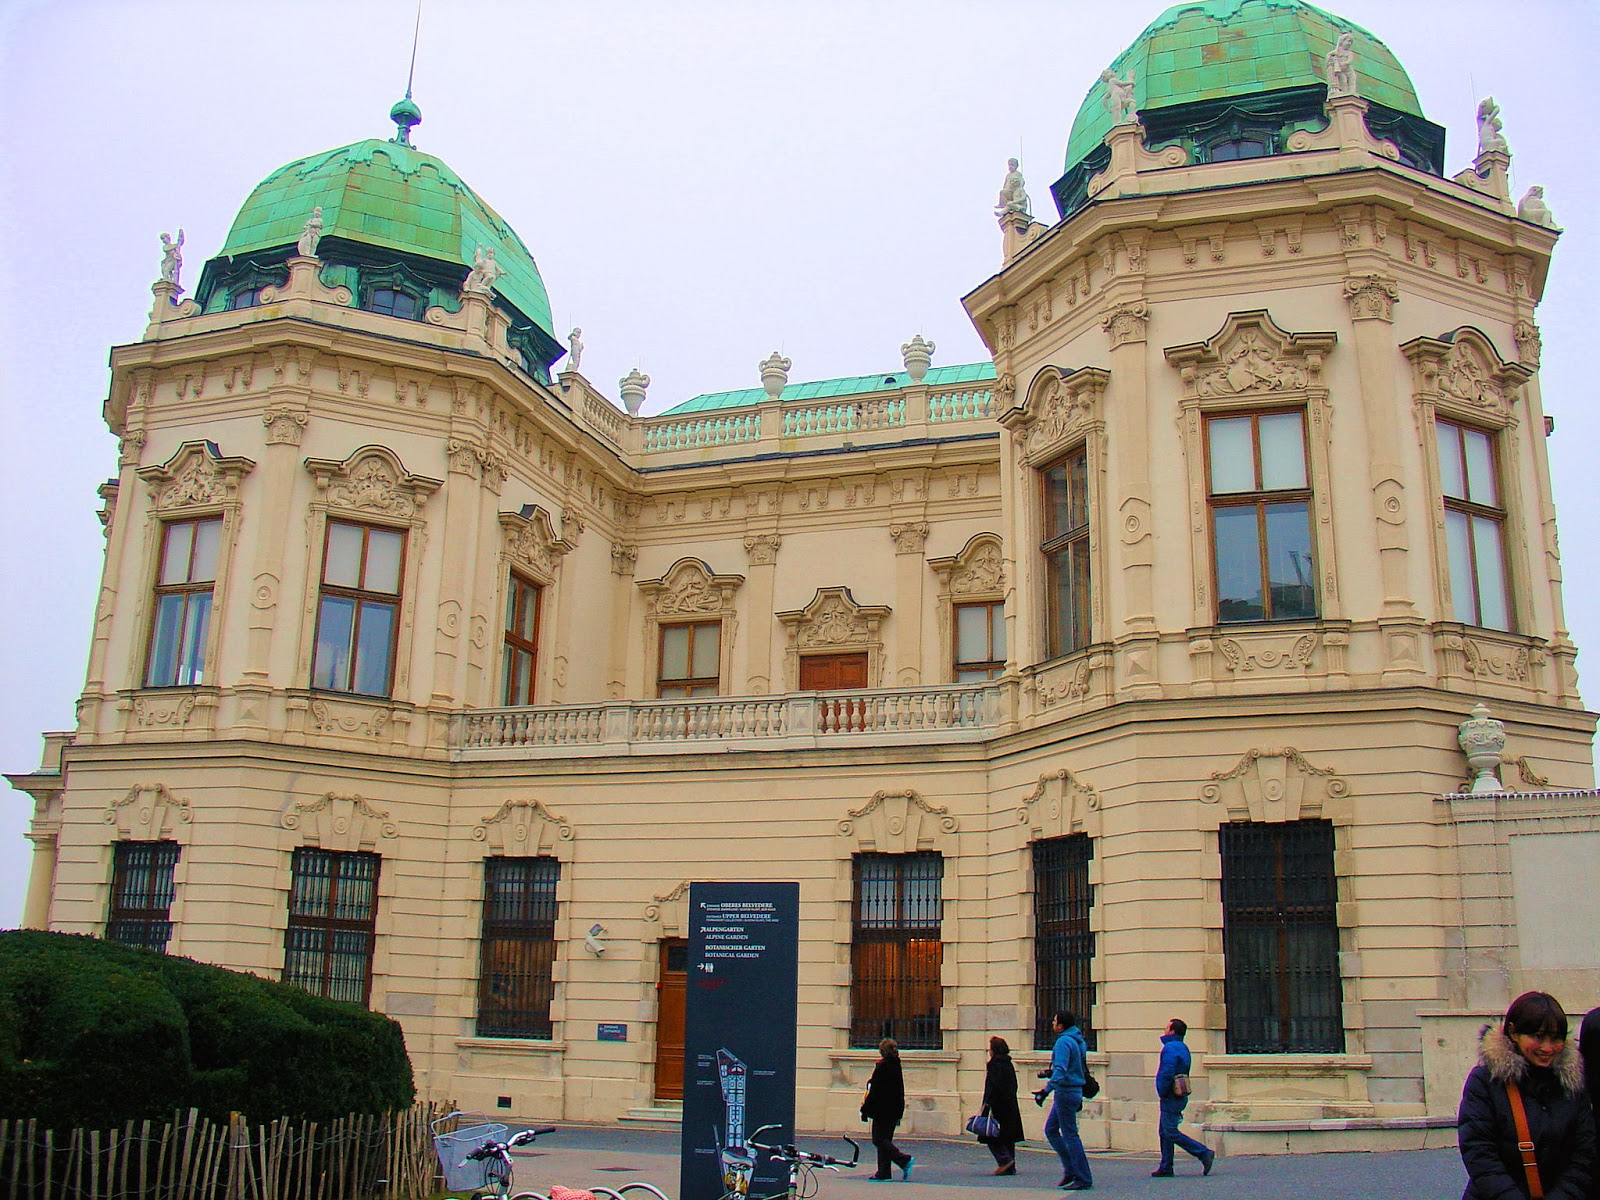 The Belvedere Palace in Vienna is home to Gustav Klimt's